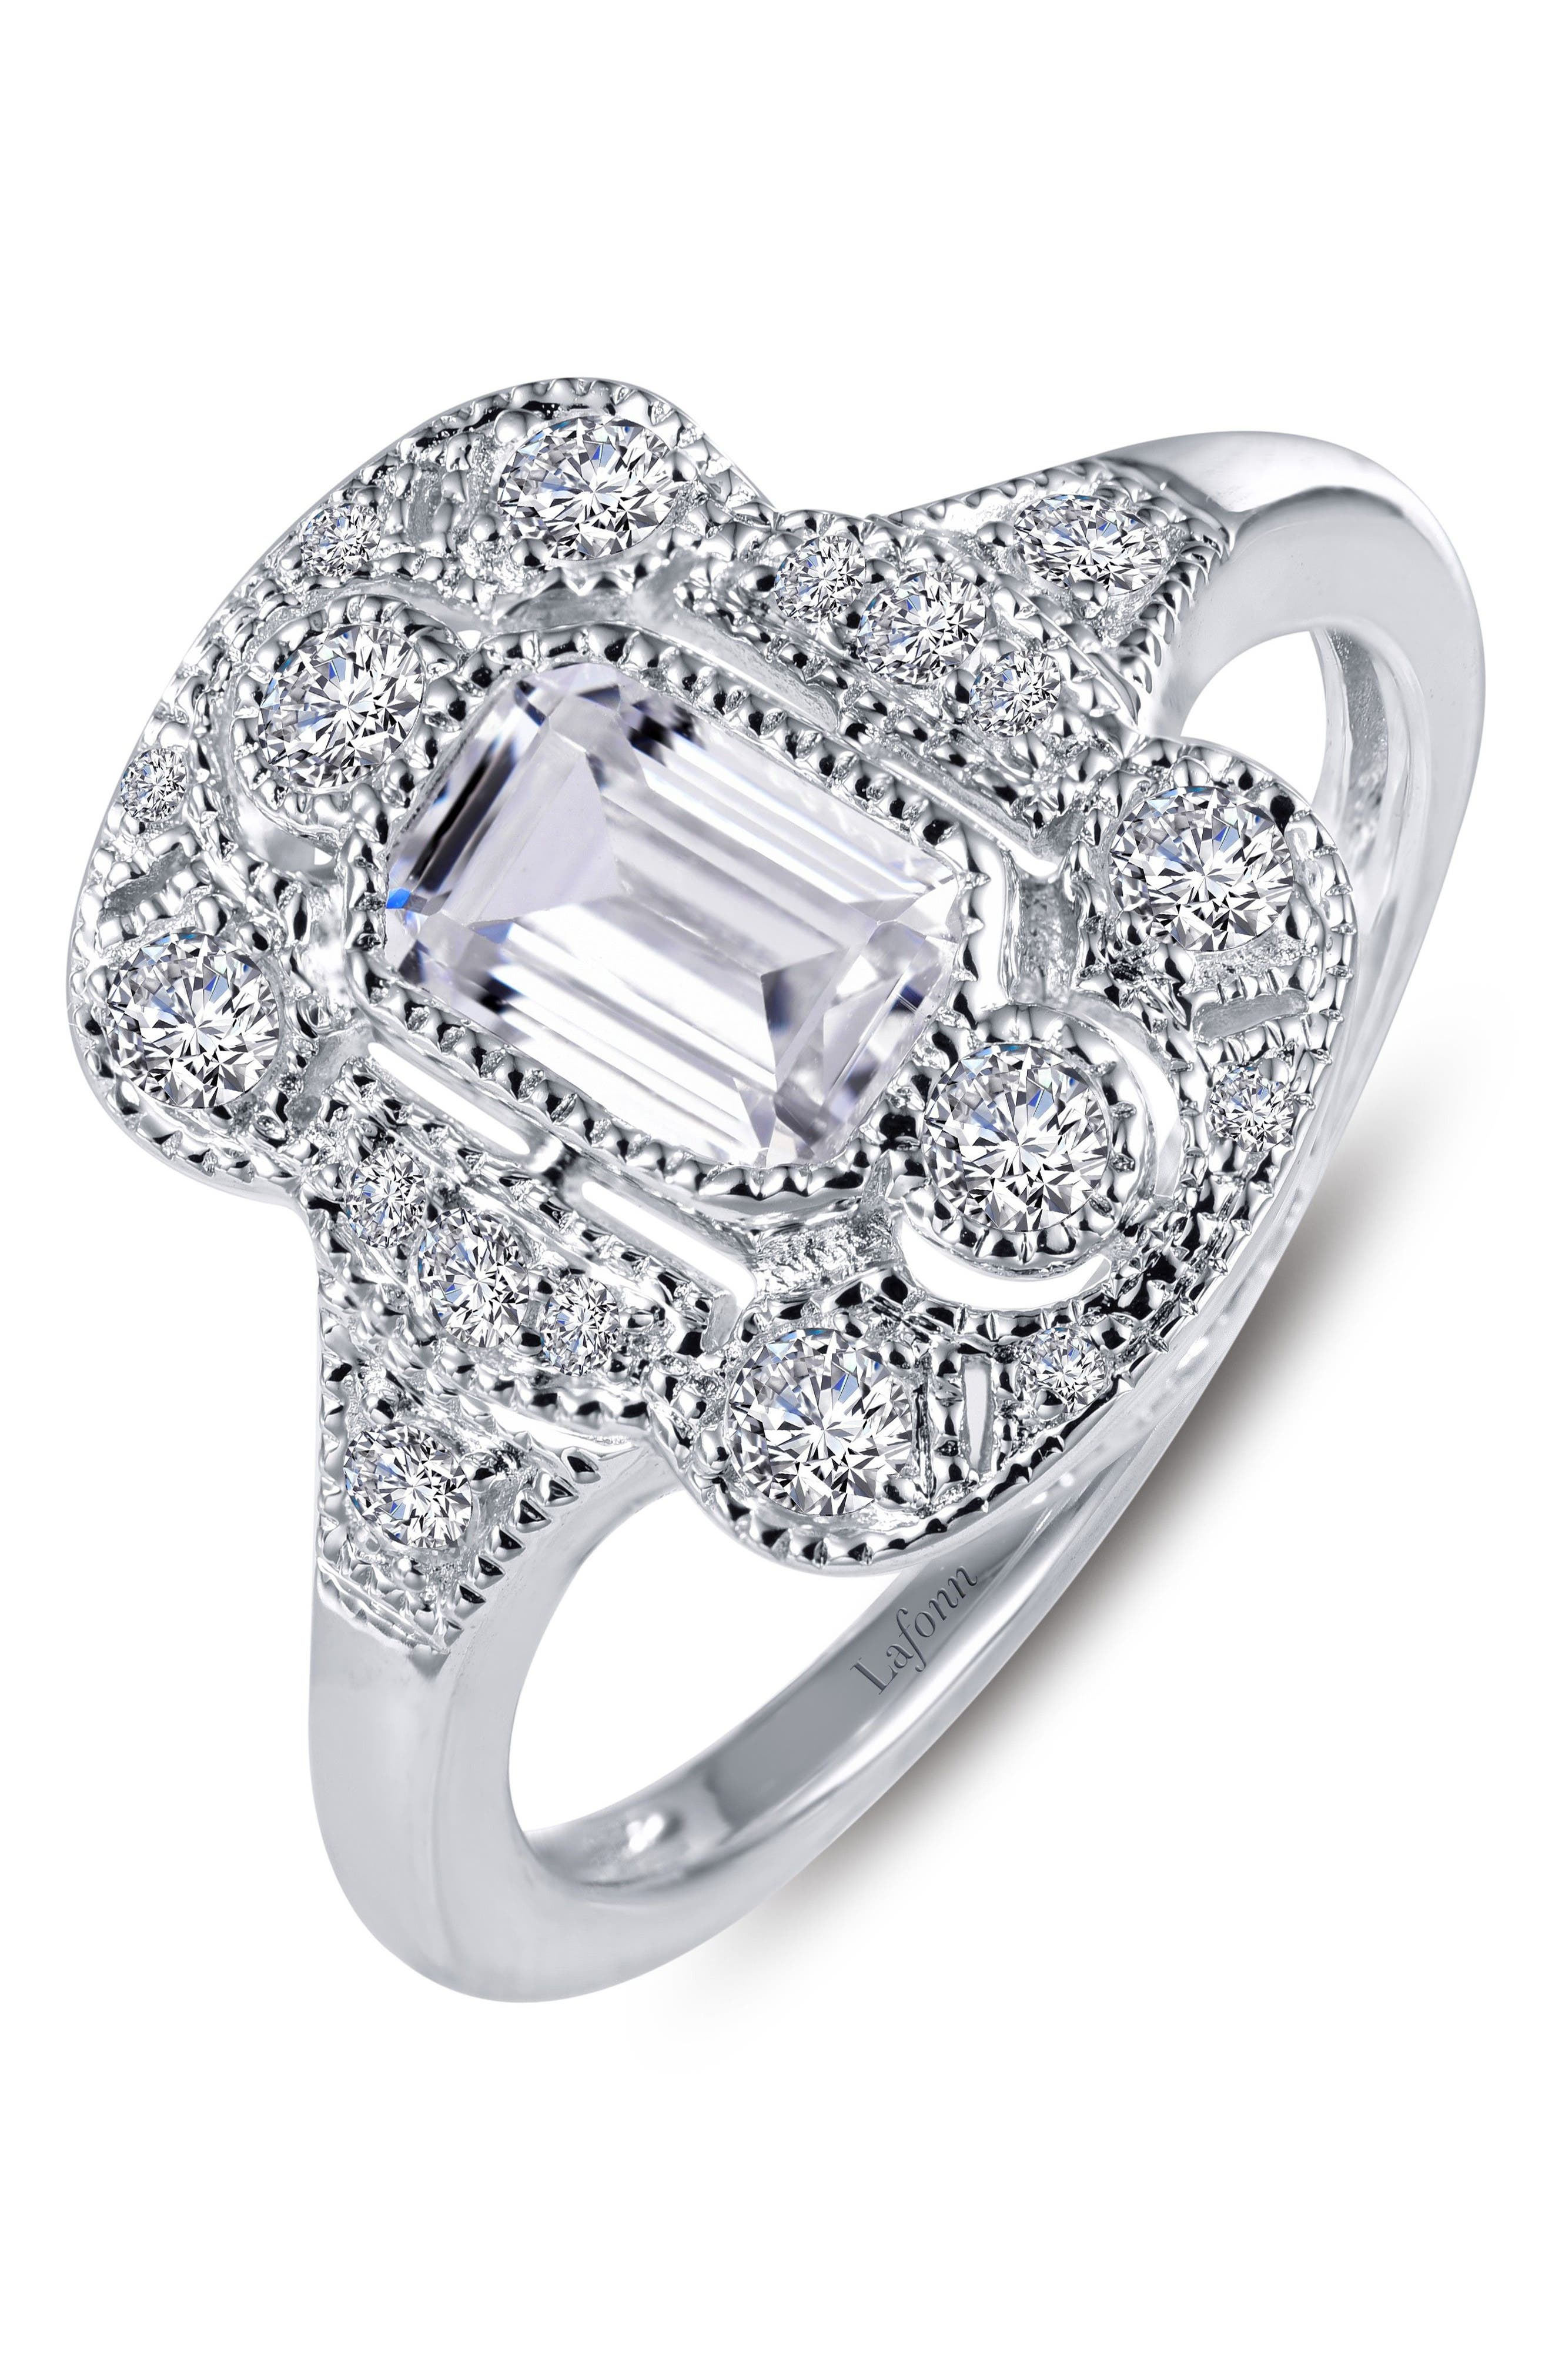 Simulated Diamond Heritage Ring,                             Main thumbnail 1, color,                             100